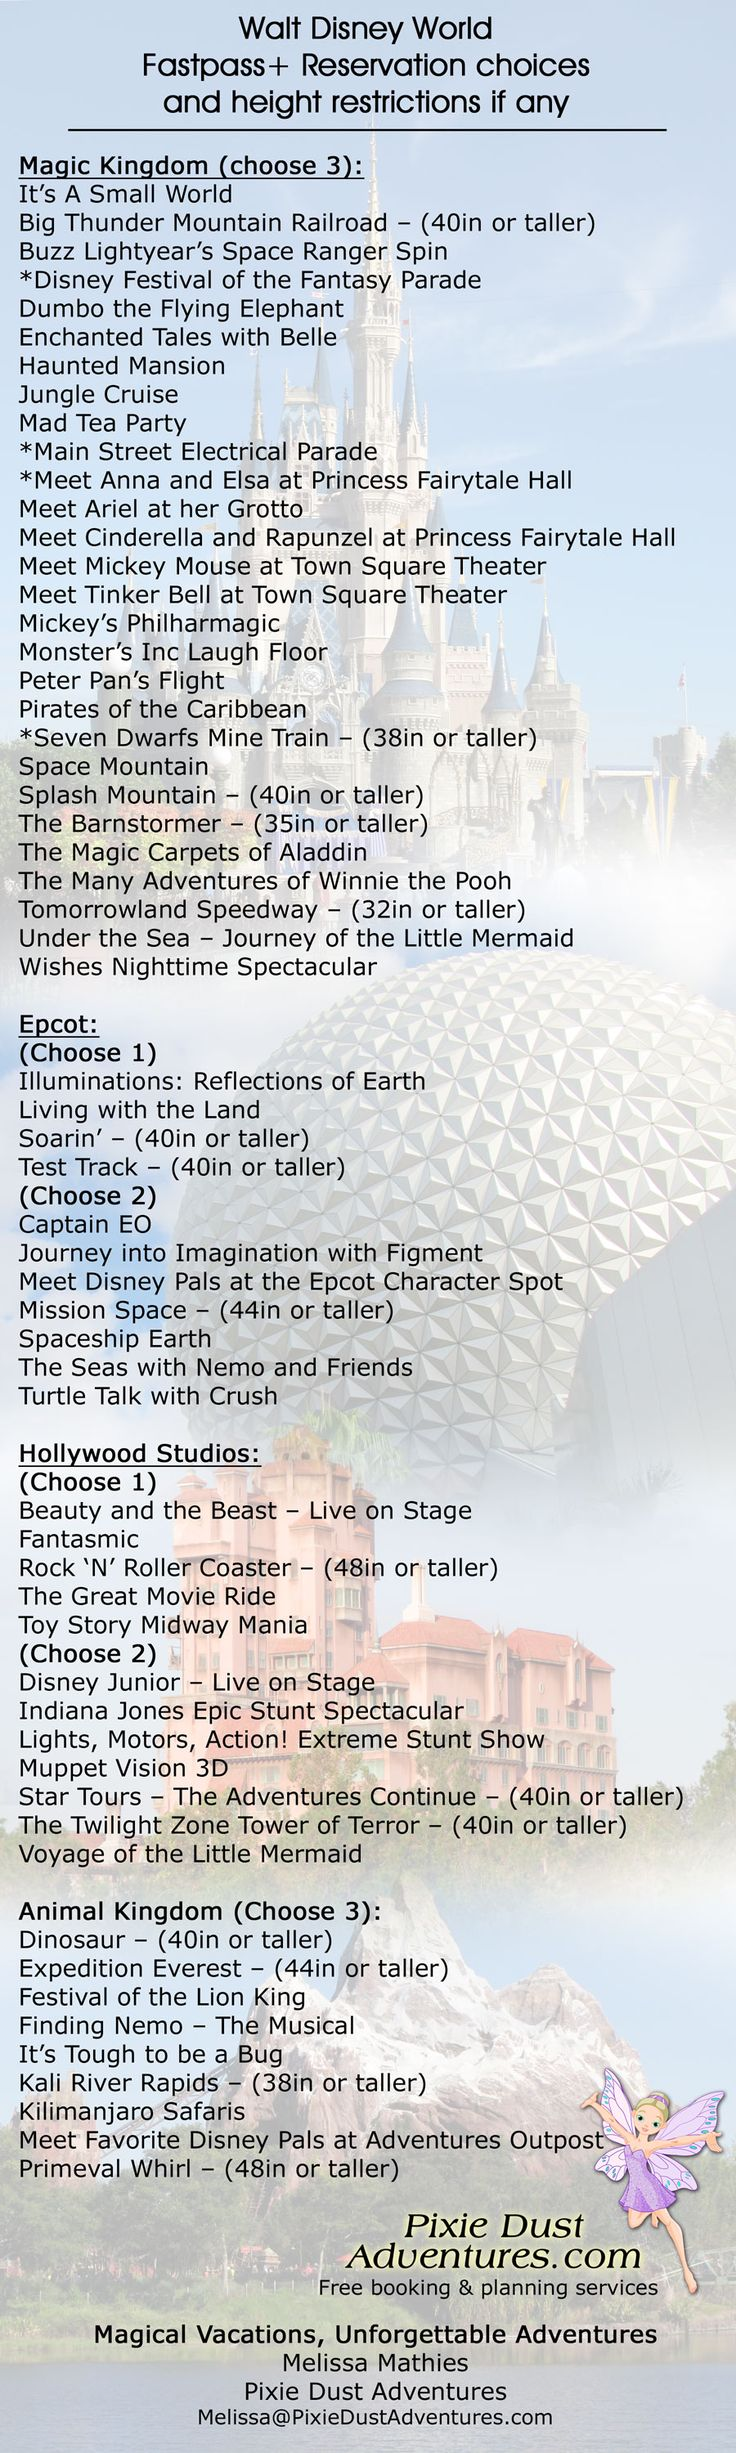 Fastpass, Disney World, selections, reservations